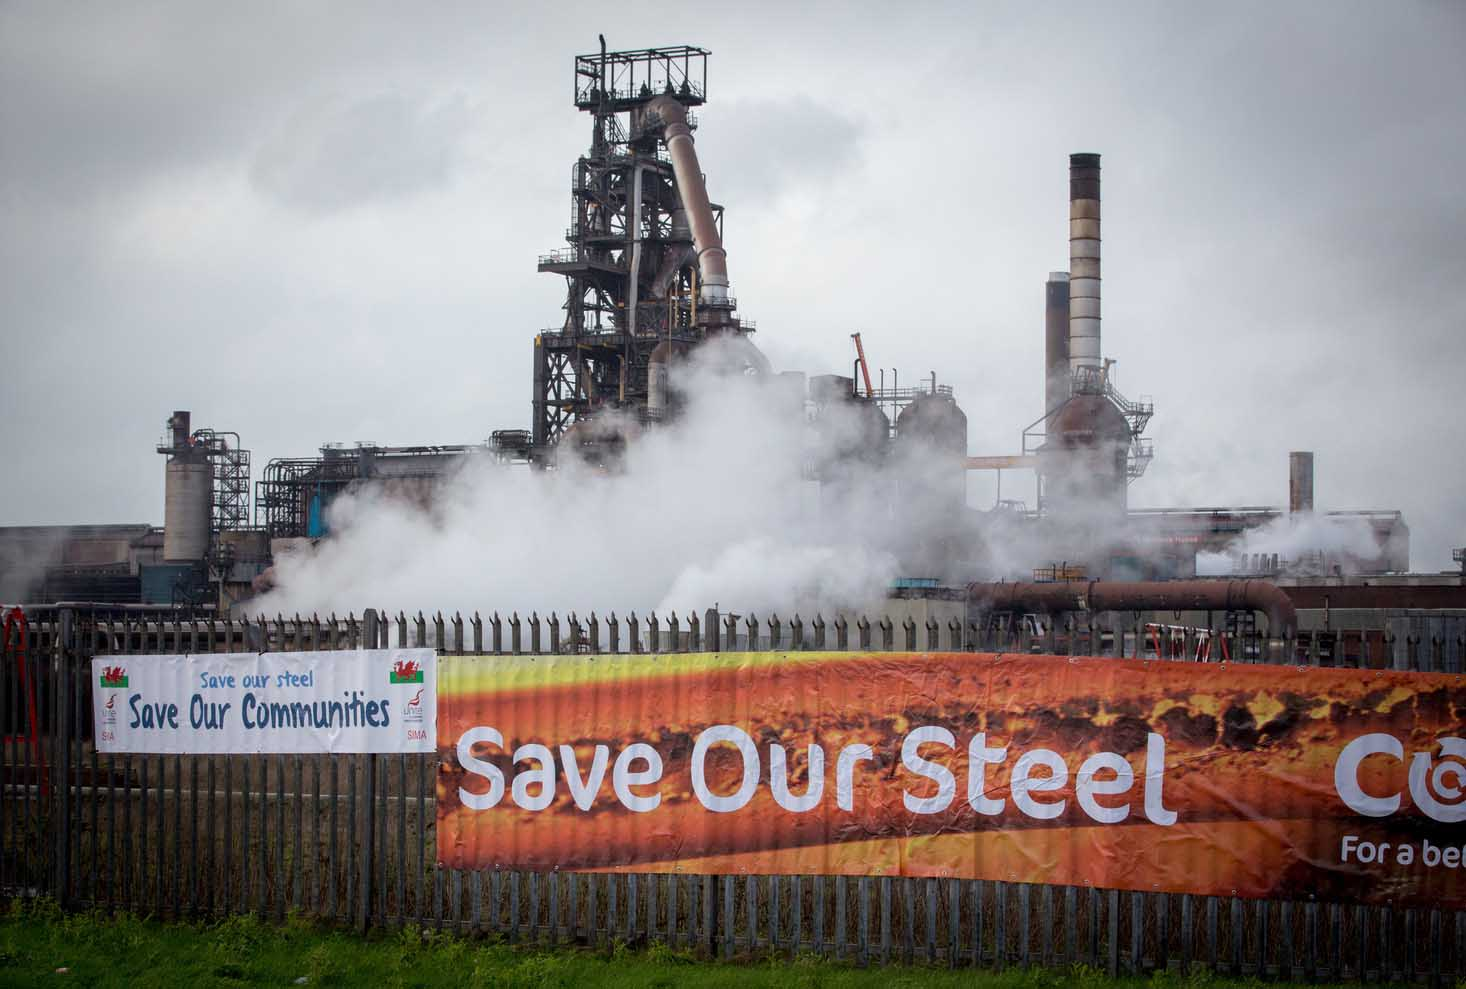 PORT TALBOT, WALES - JANUARY 18:  A poster is displayed outside the main gates of the Tata steelworks on January 18, 2016 in Port Talbot, Wales. Tata Steel has confirmed today that it plans to cut 1,050 jobs in the UK, including 750 at Port Talbot which is the UK's biggest steelworks.  (Photo by Matt Cardy/Getty Images)